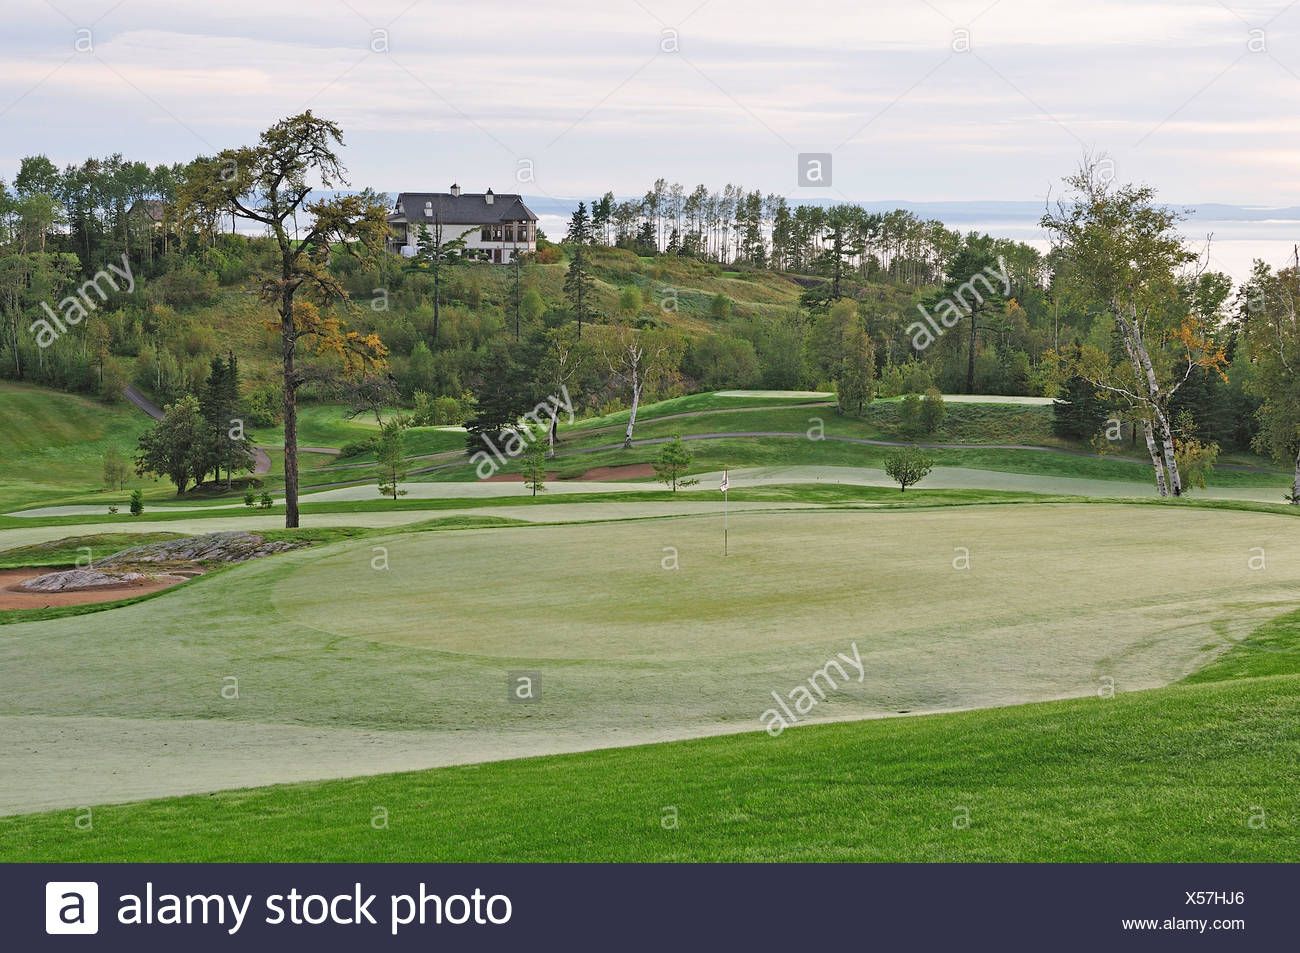 Golf course, Malbaie, Quebec, Canada, golf, green, - Stock Image